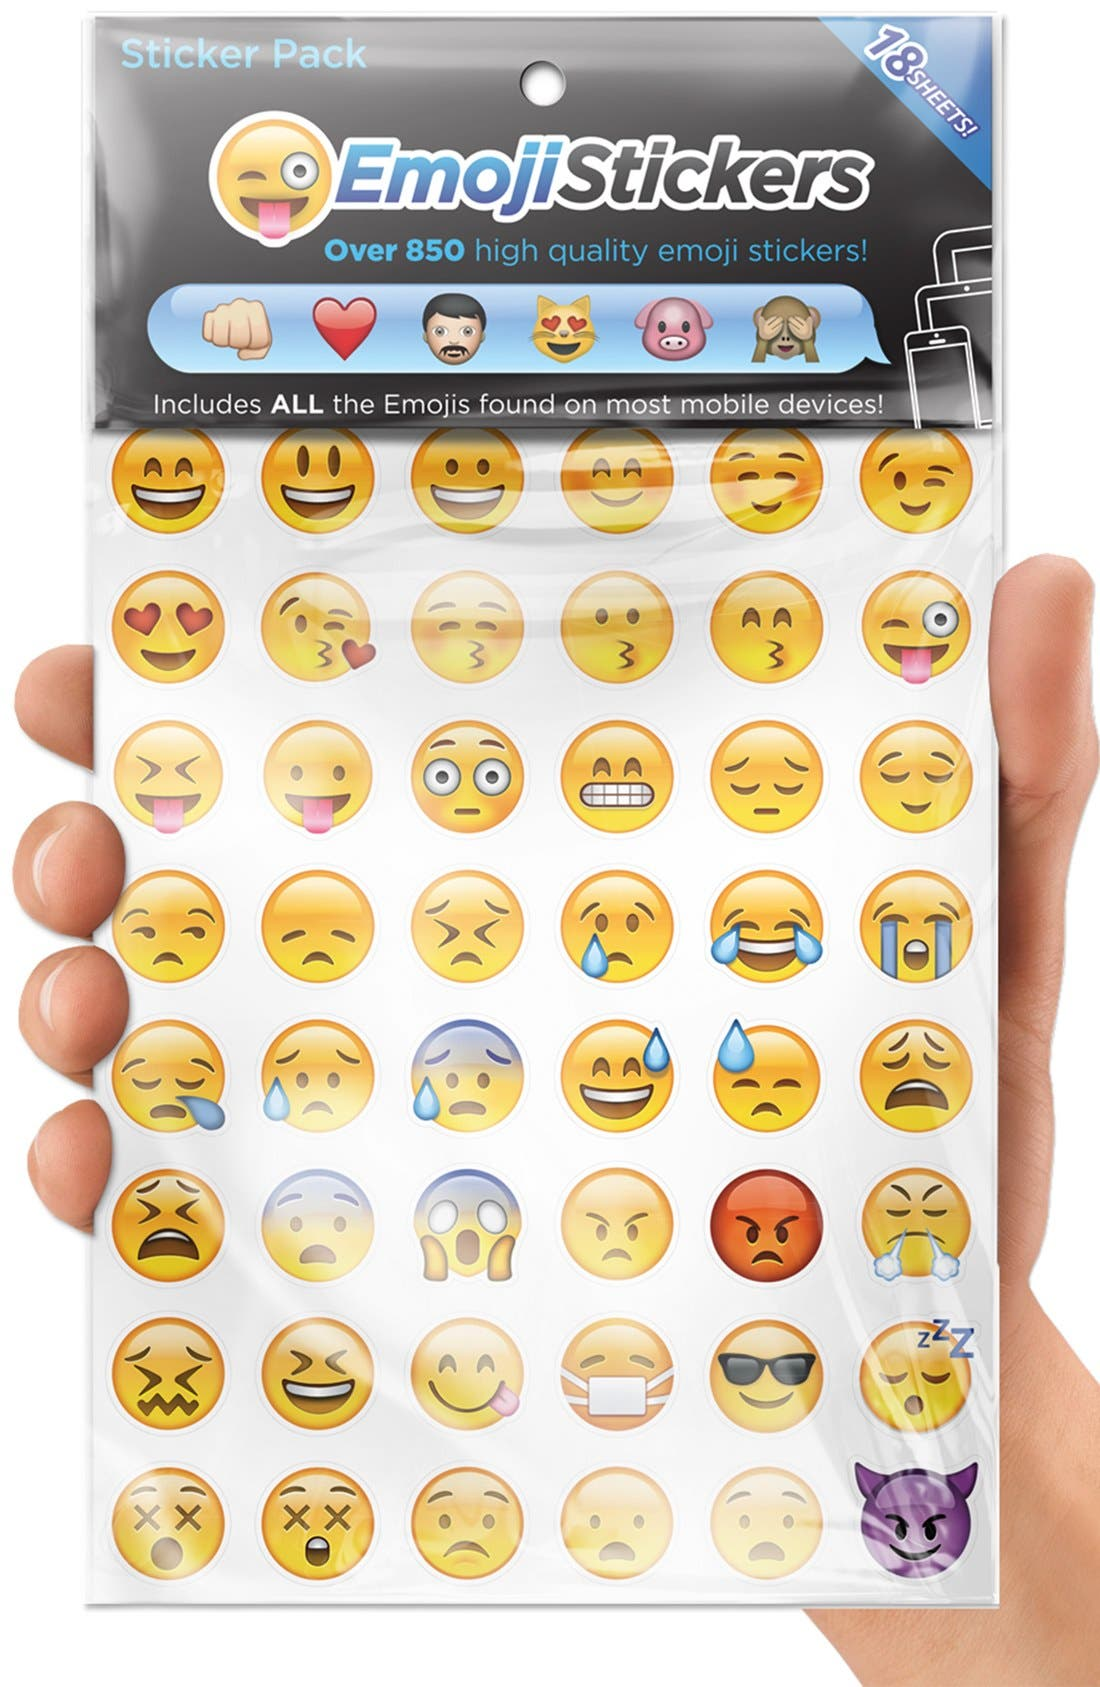 Alternate Image 1 Selected - Emoji Sticker Pack Emoji Stickers (18-Pack)